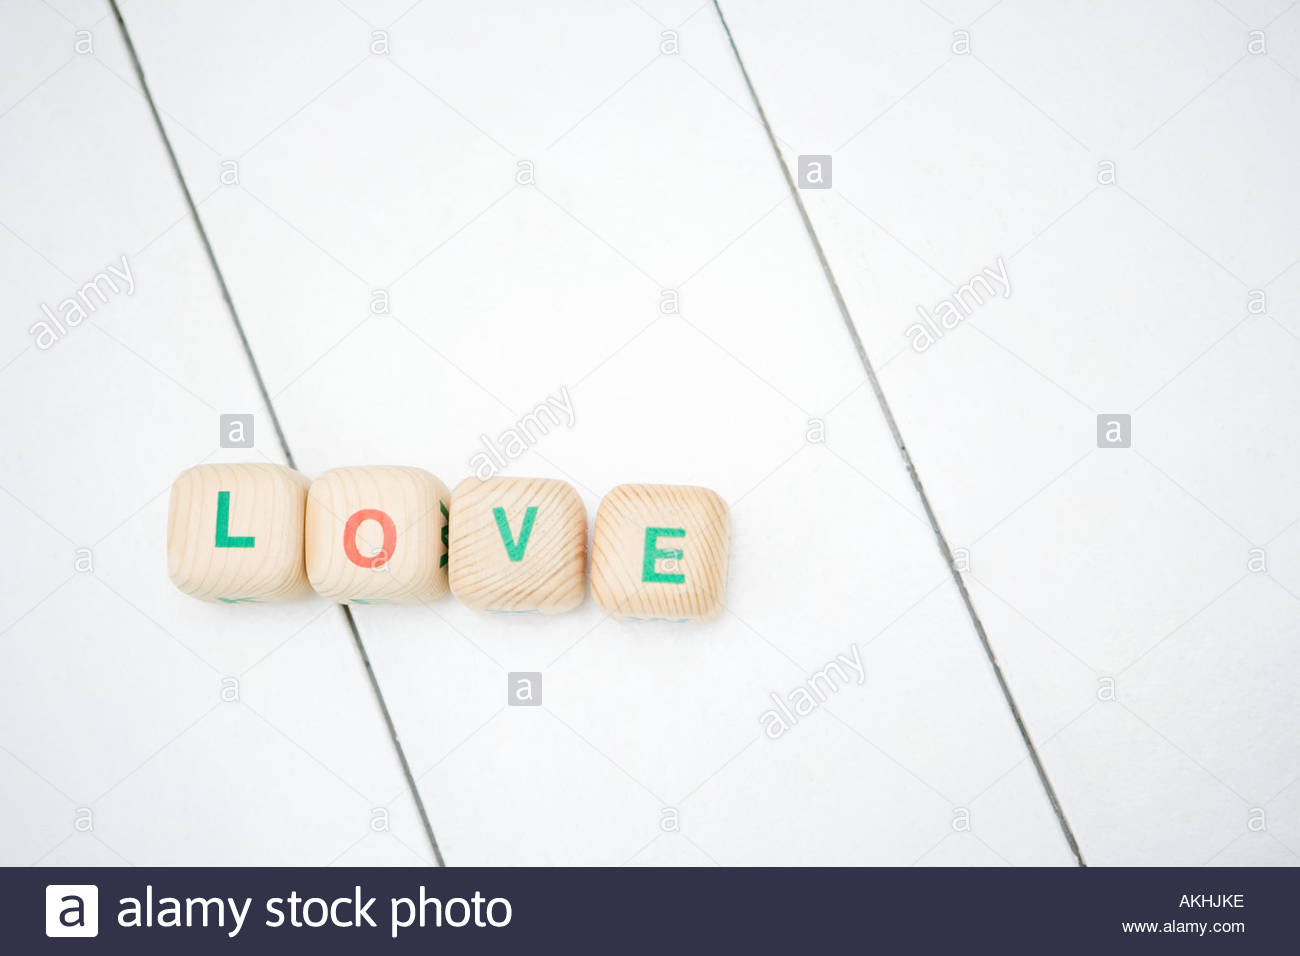 Love written with toy blocks - Stock Image